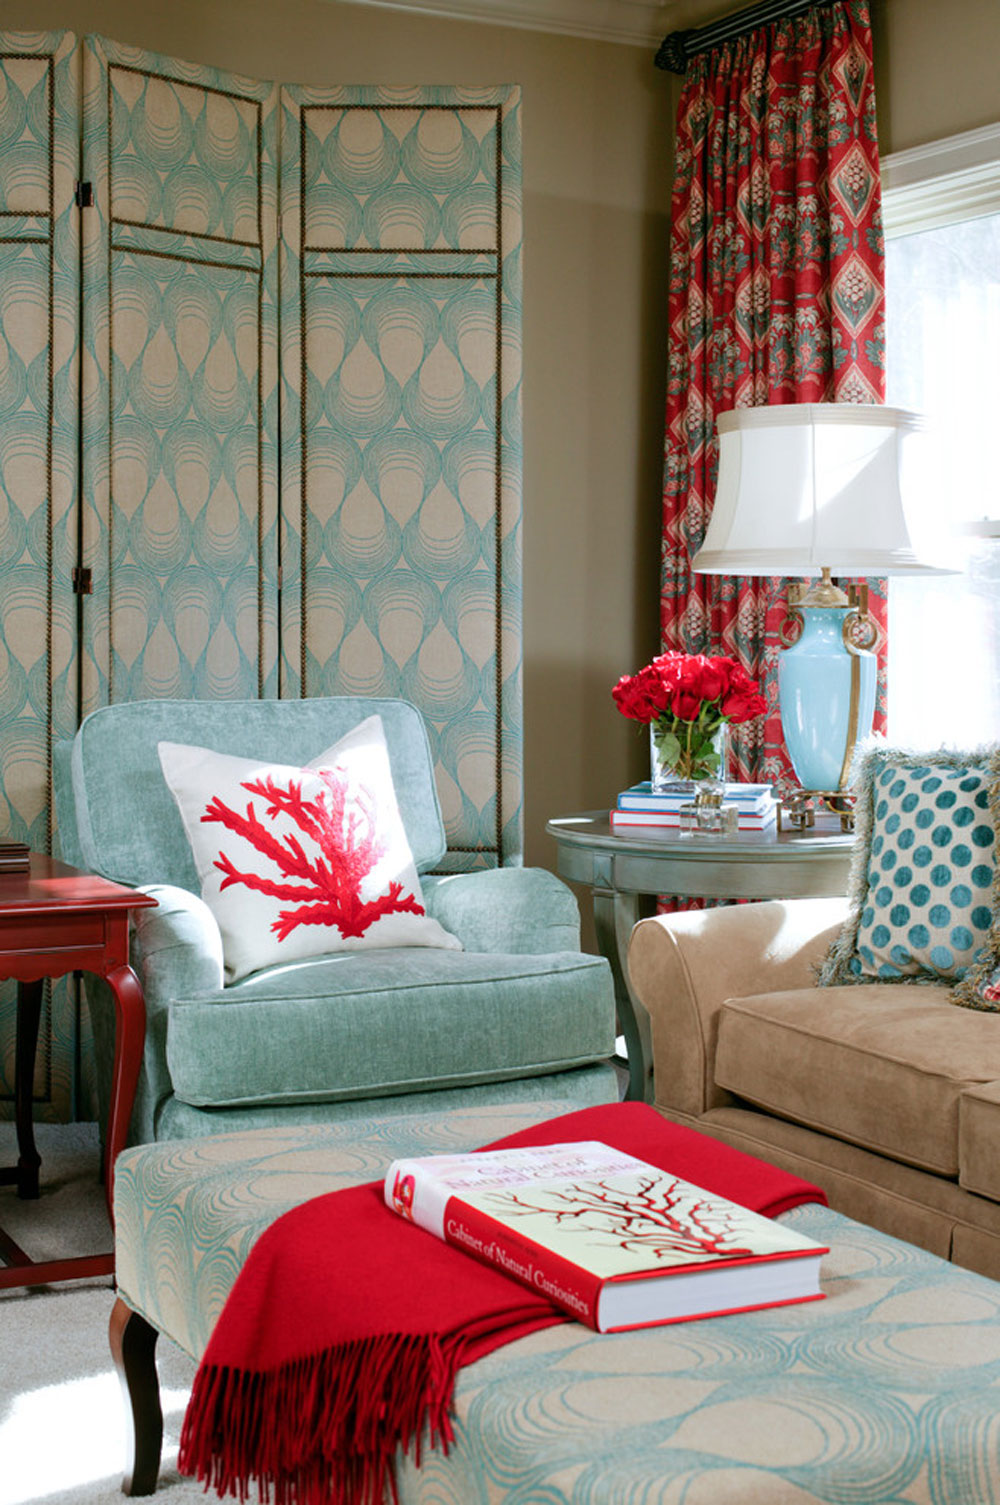 Bella-View-by-Tobi-Fairley-Interior-Design The aqua color: How to decorate your house interior with it